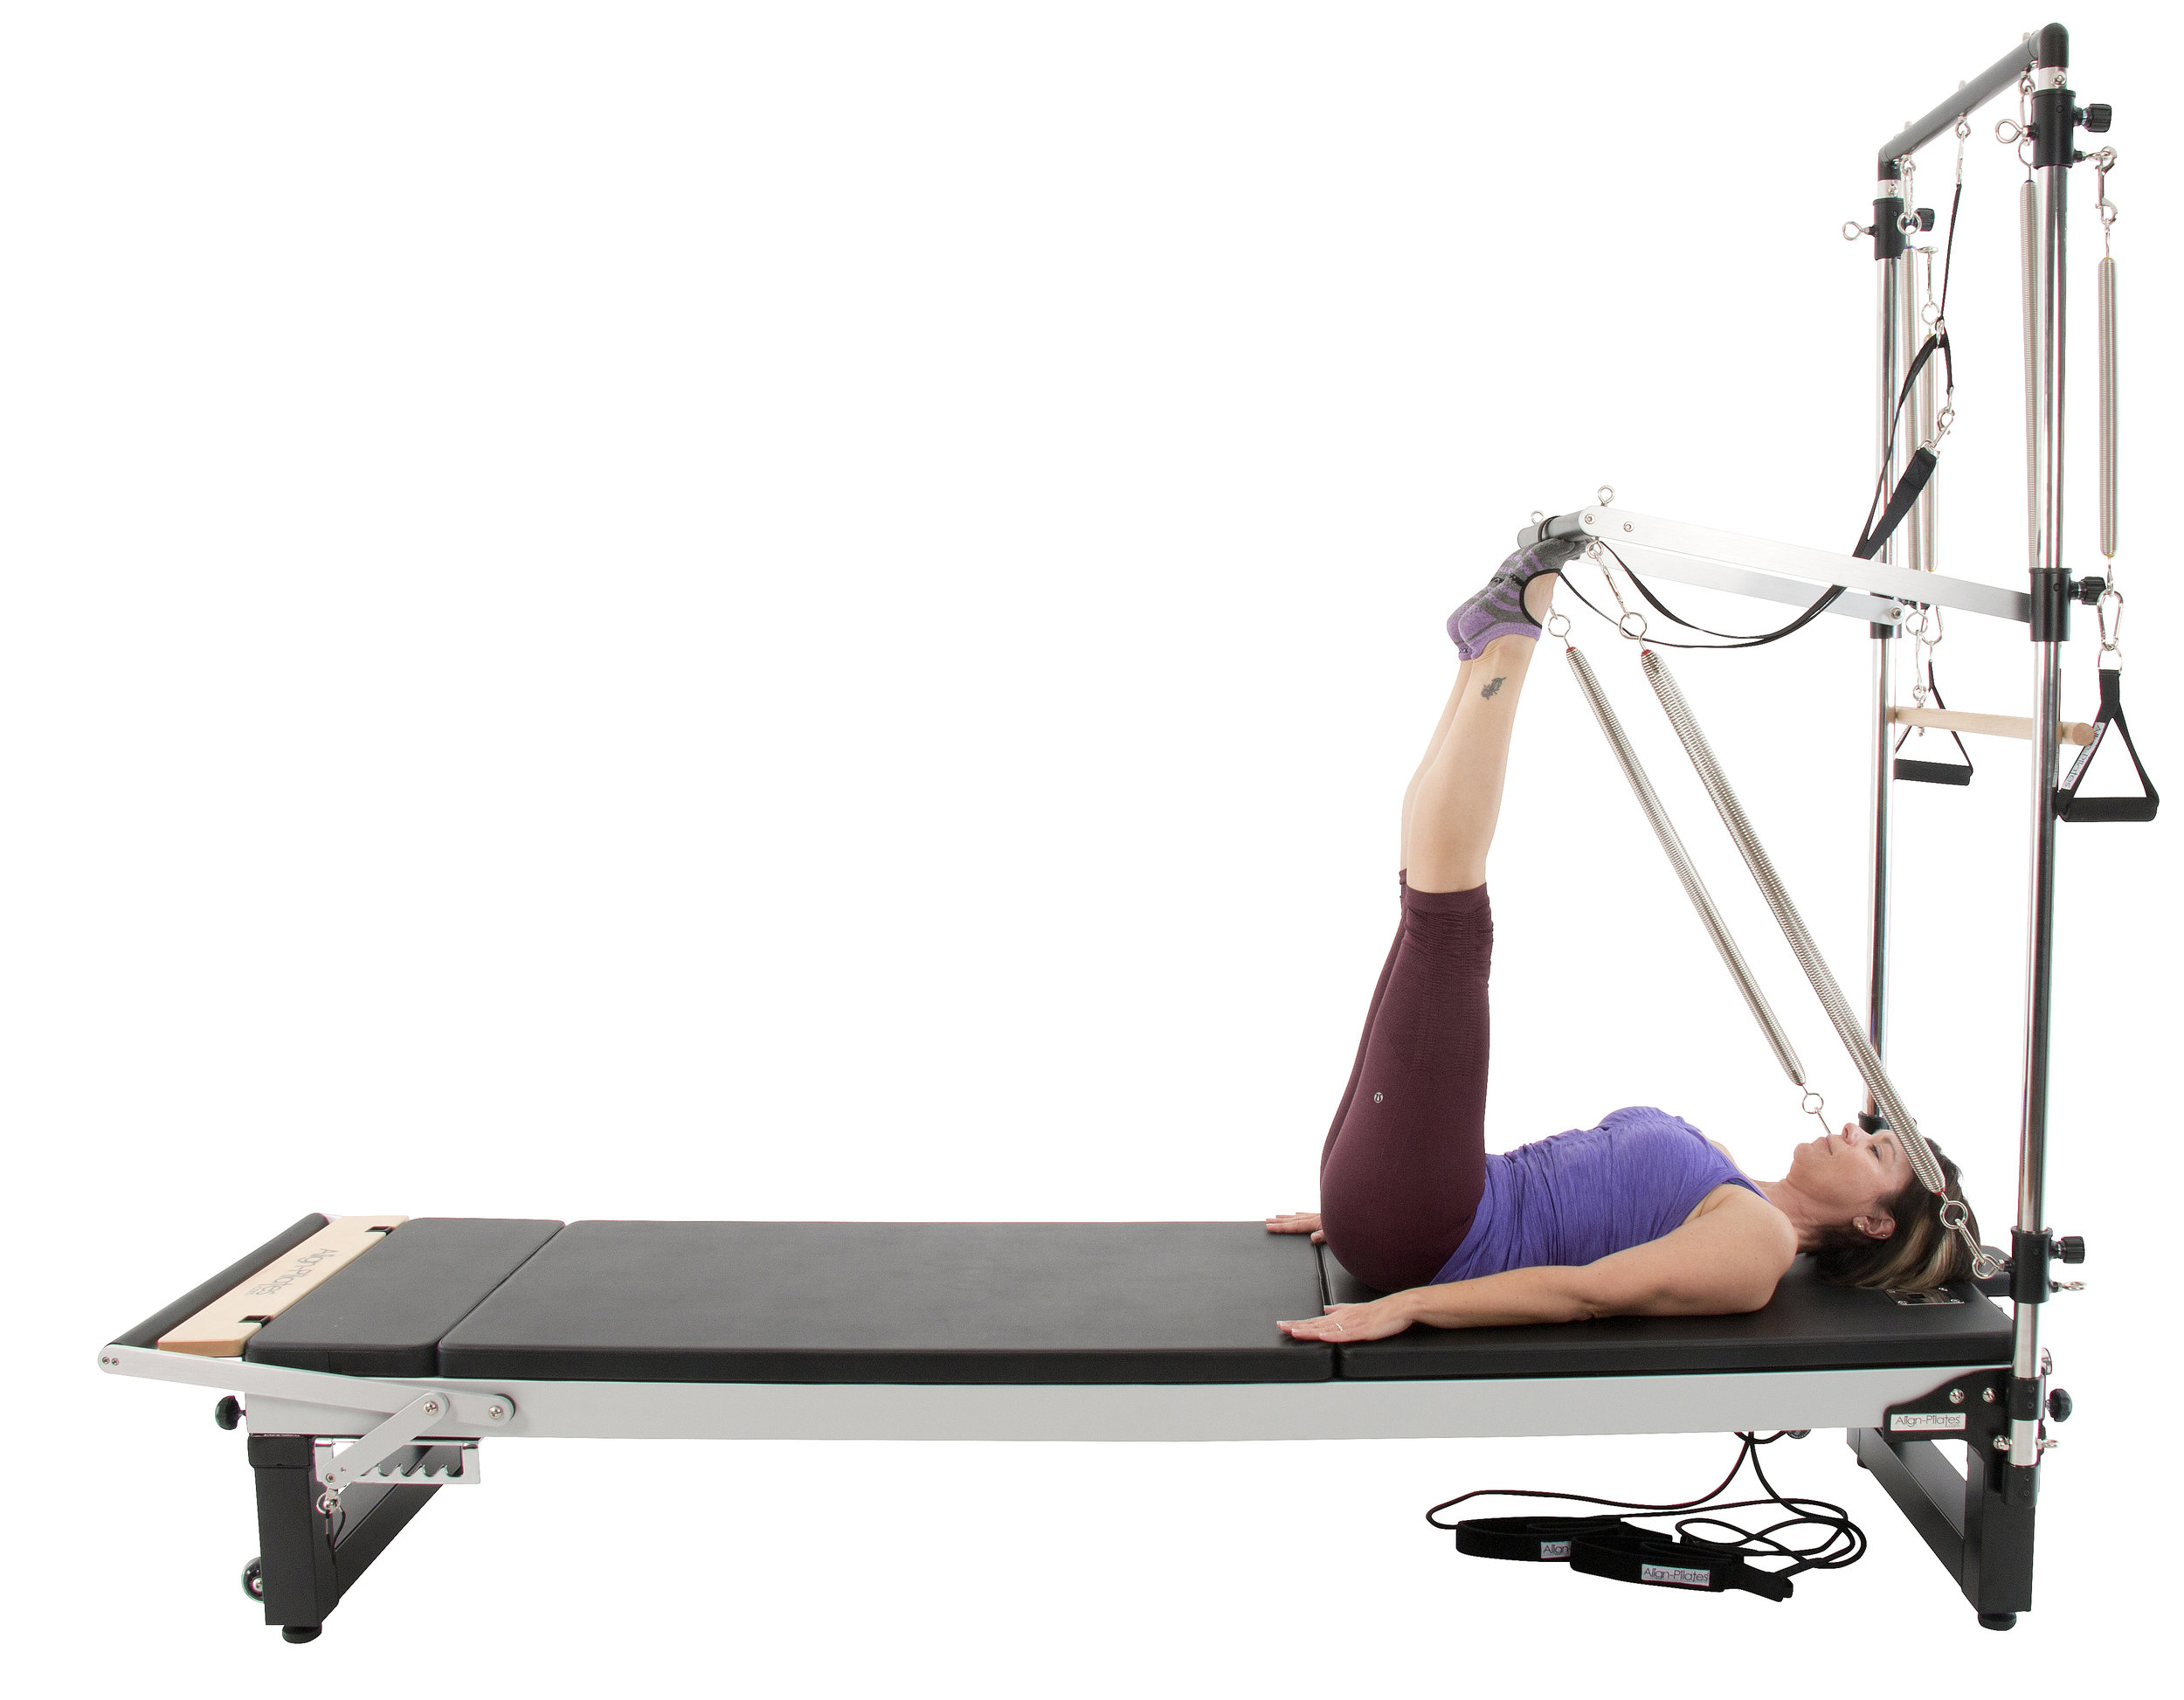 Align A2R2 studio pilates reformer with extension legs and half trap